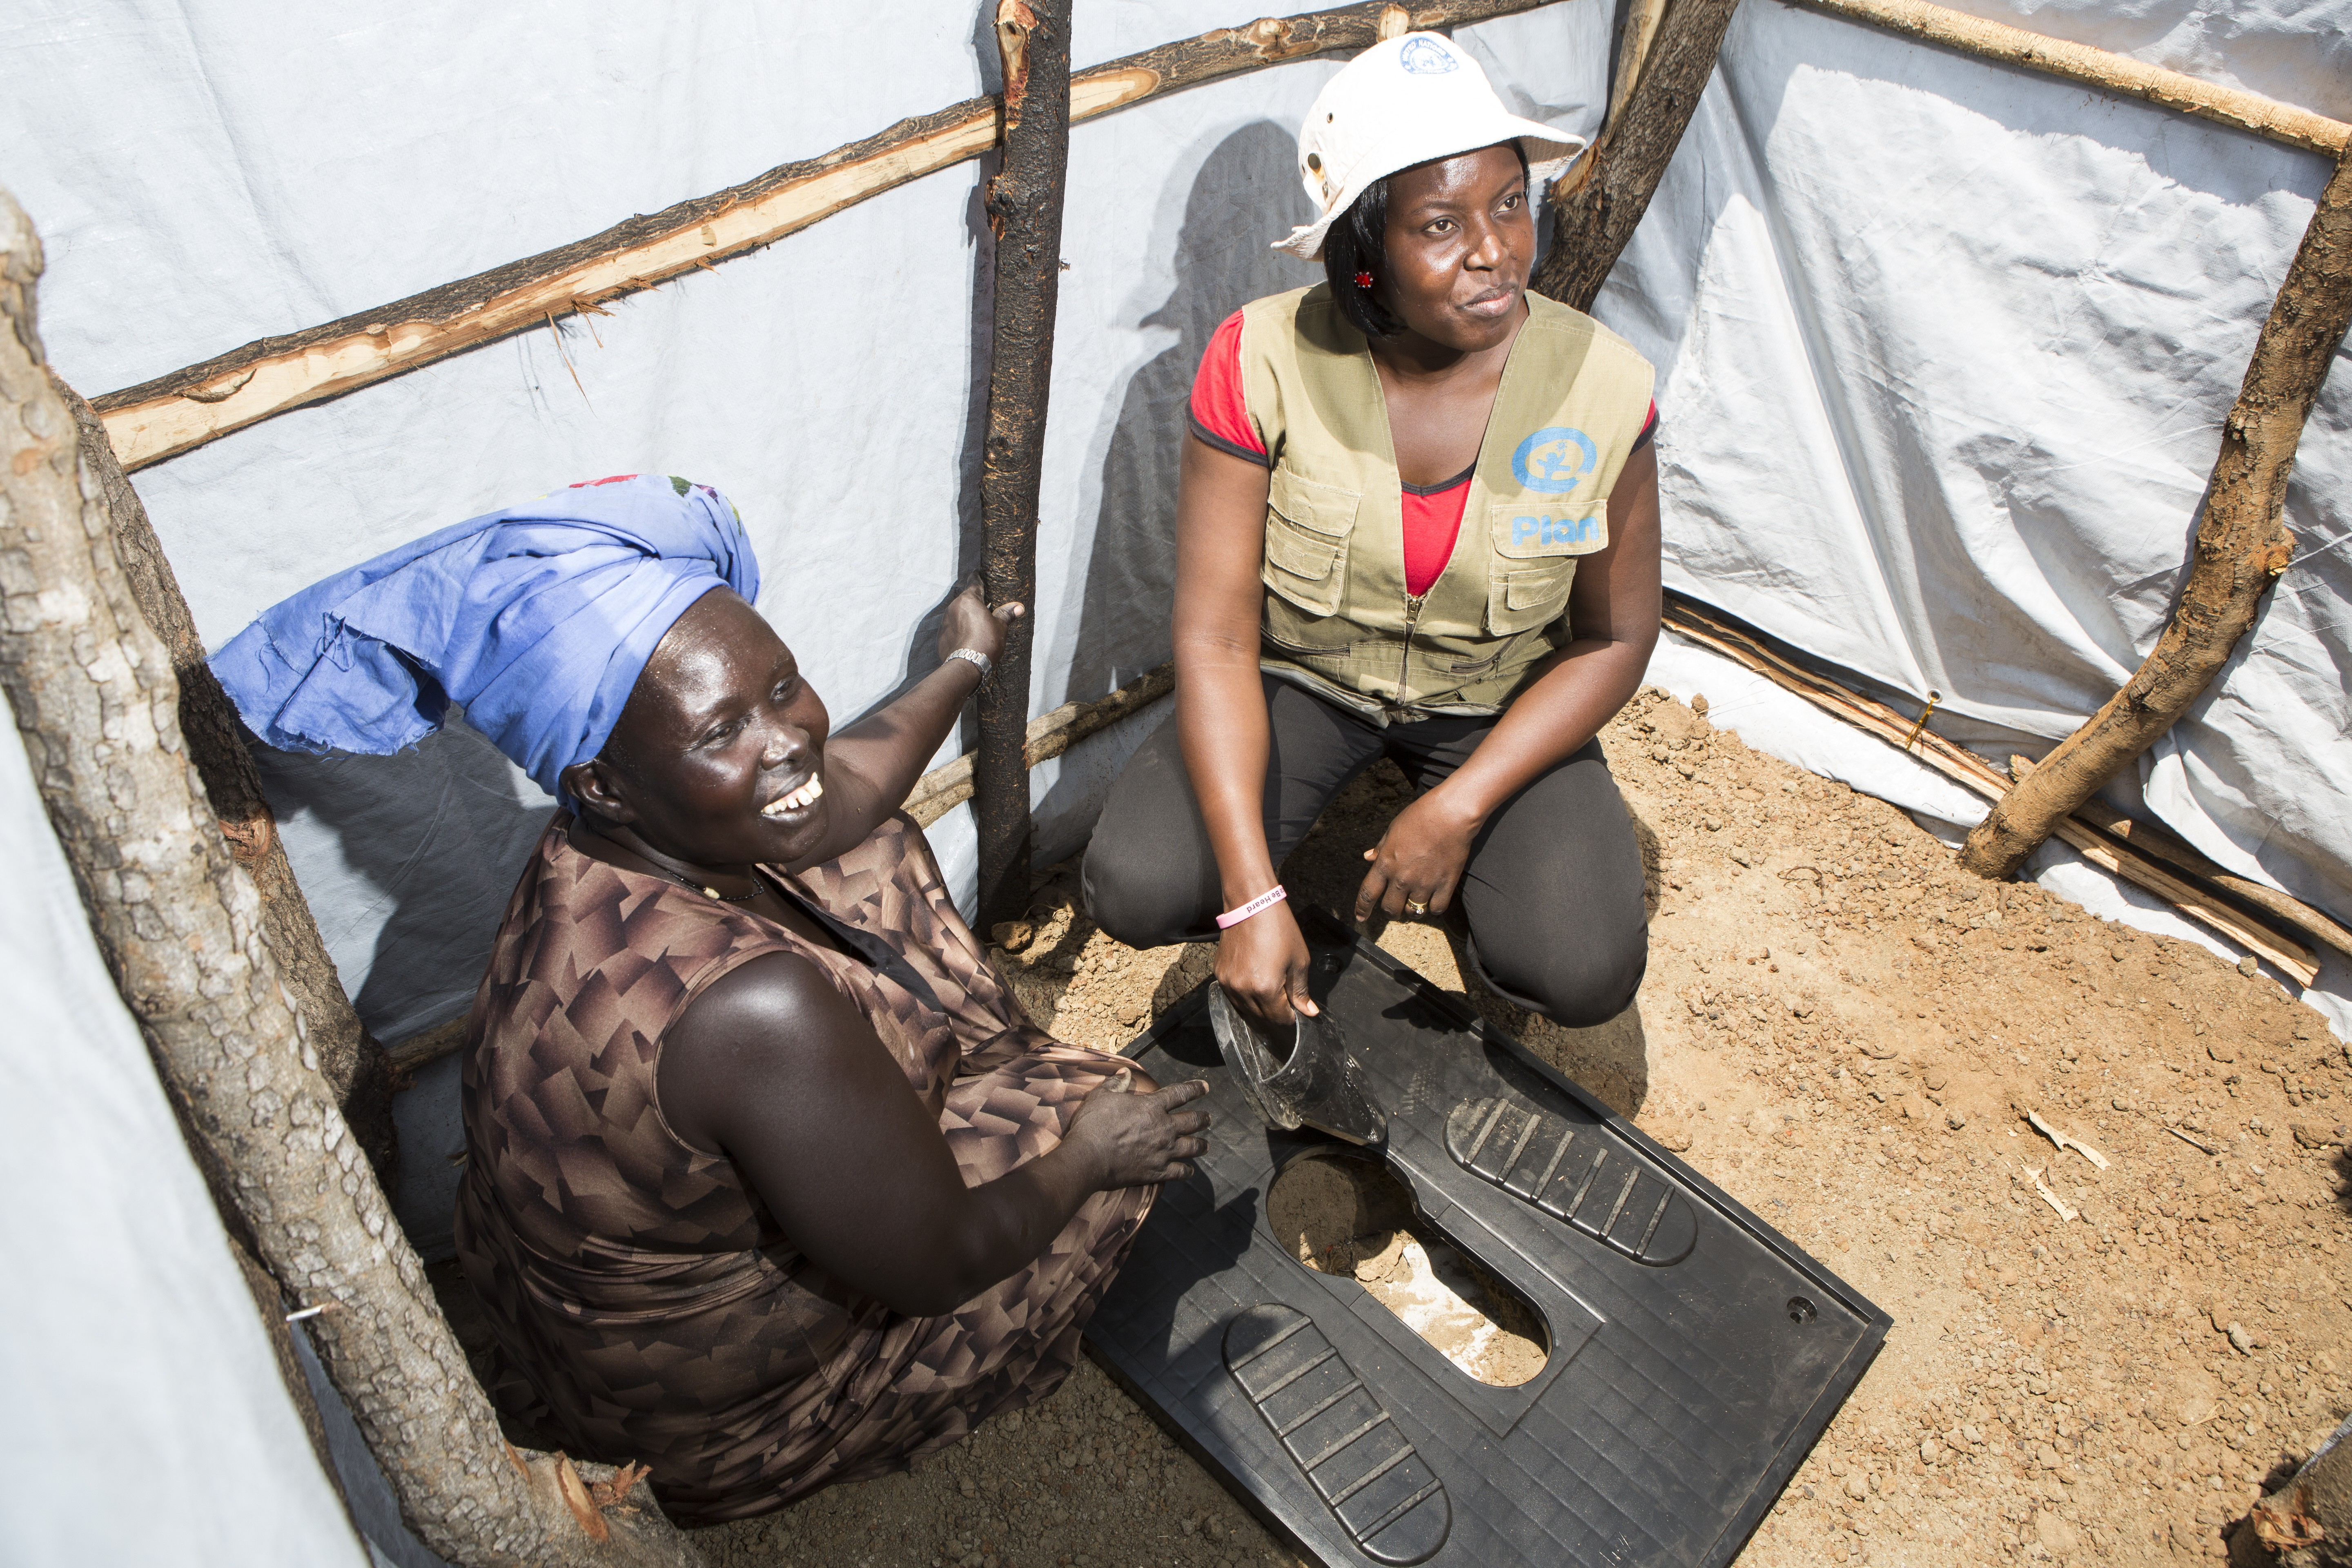 Women are safer if they have easy access to sanitation.